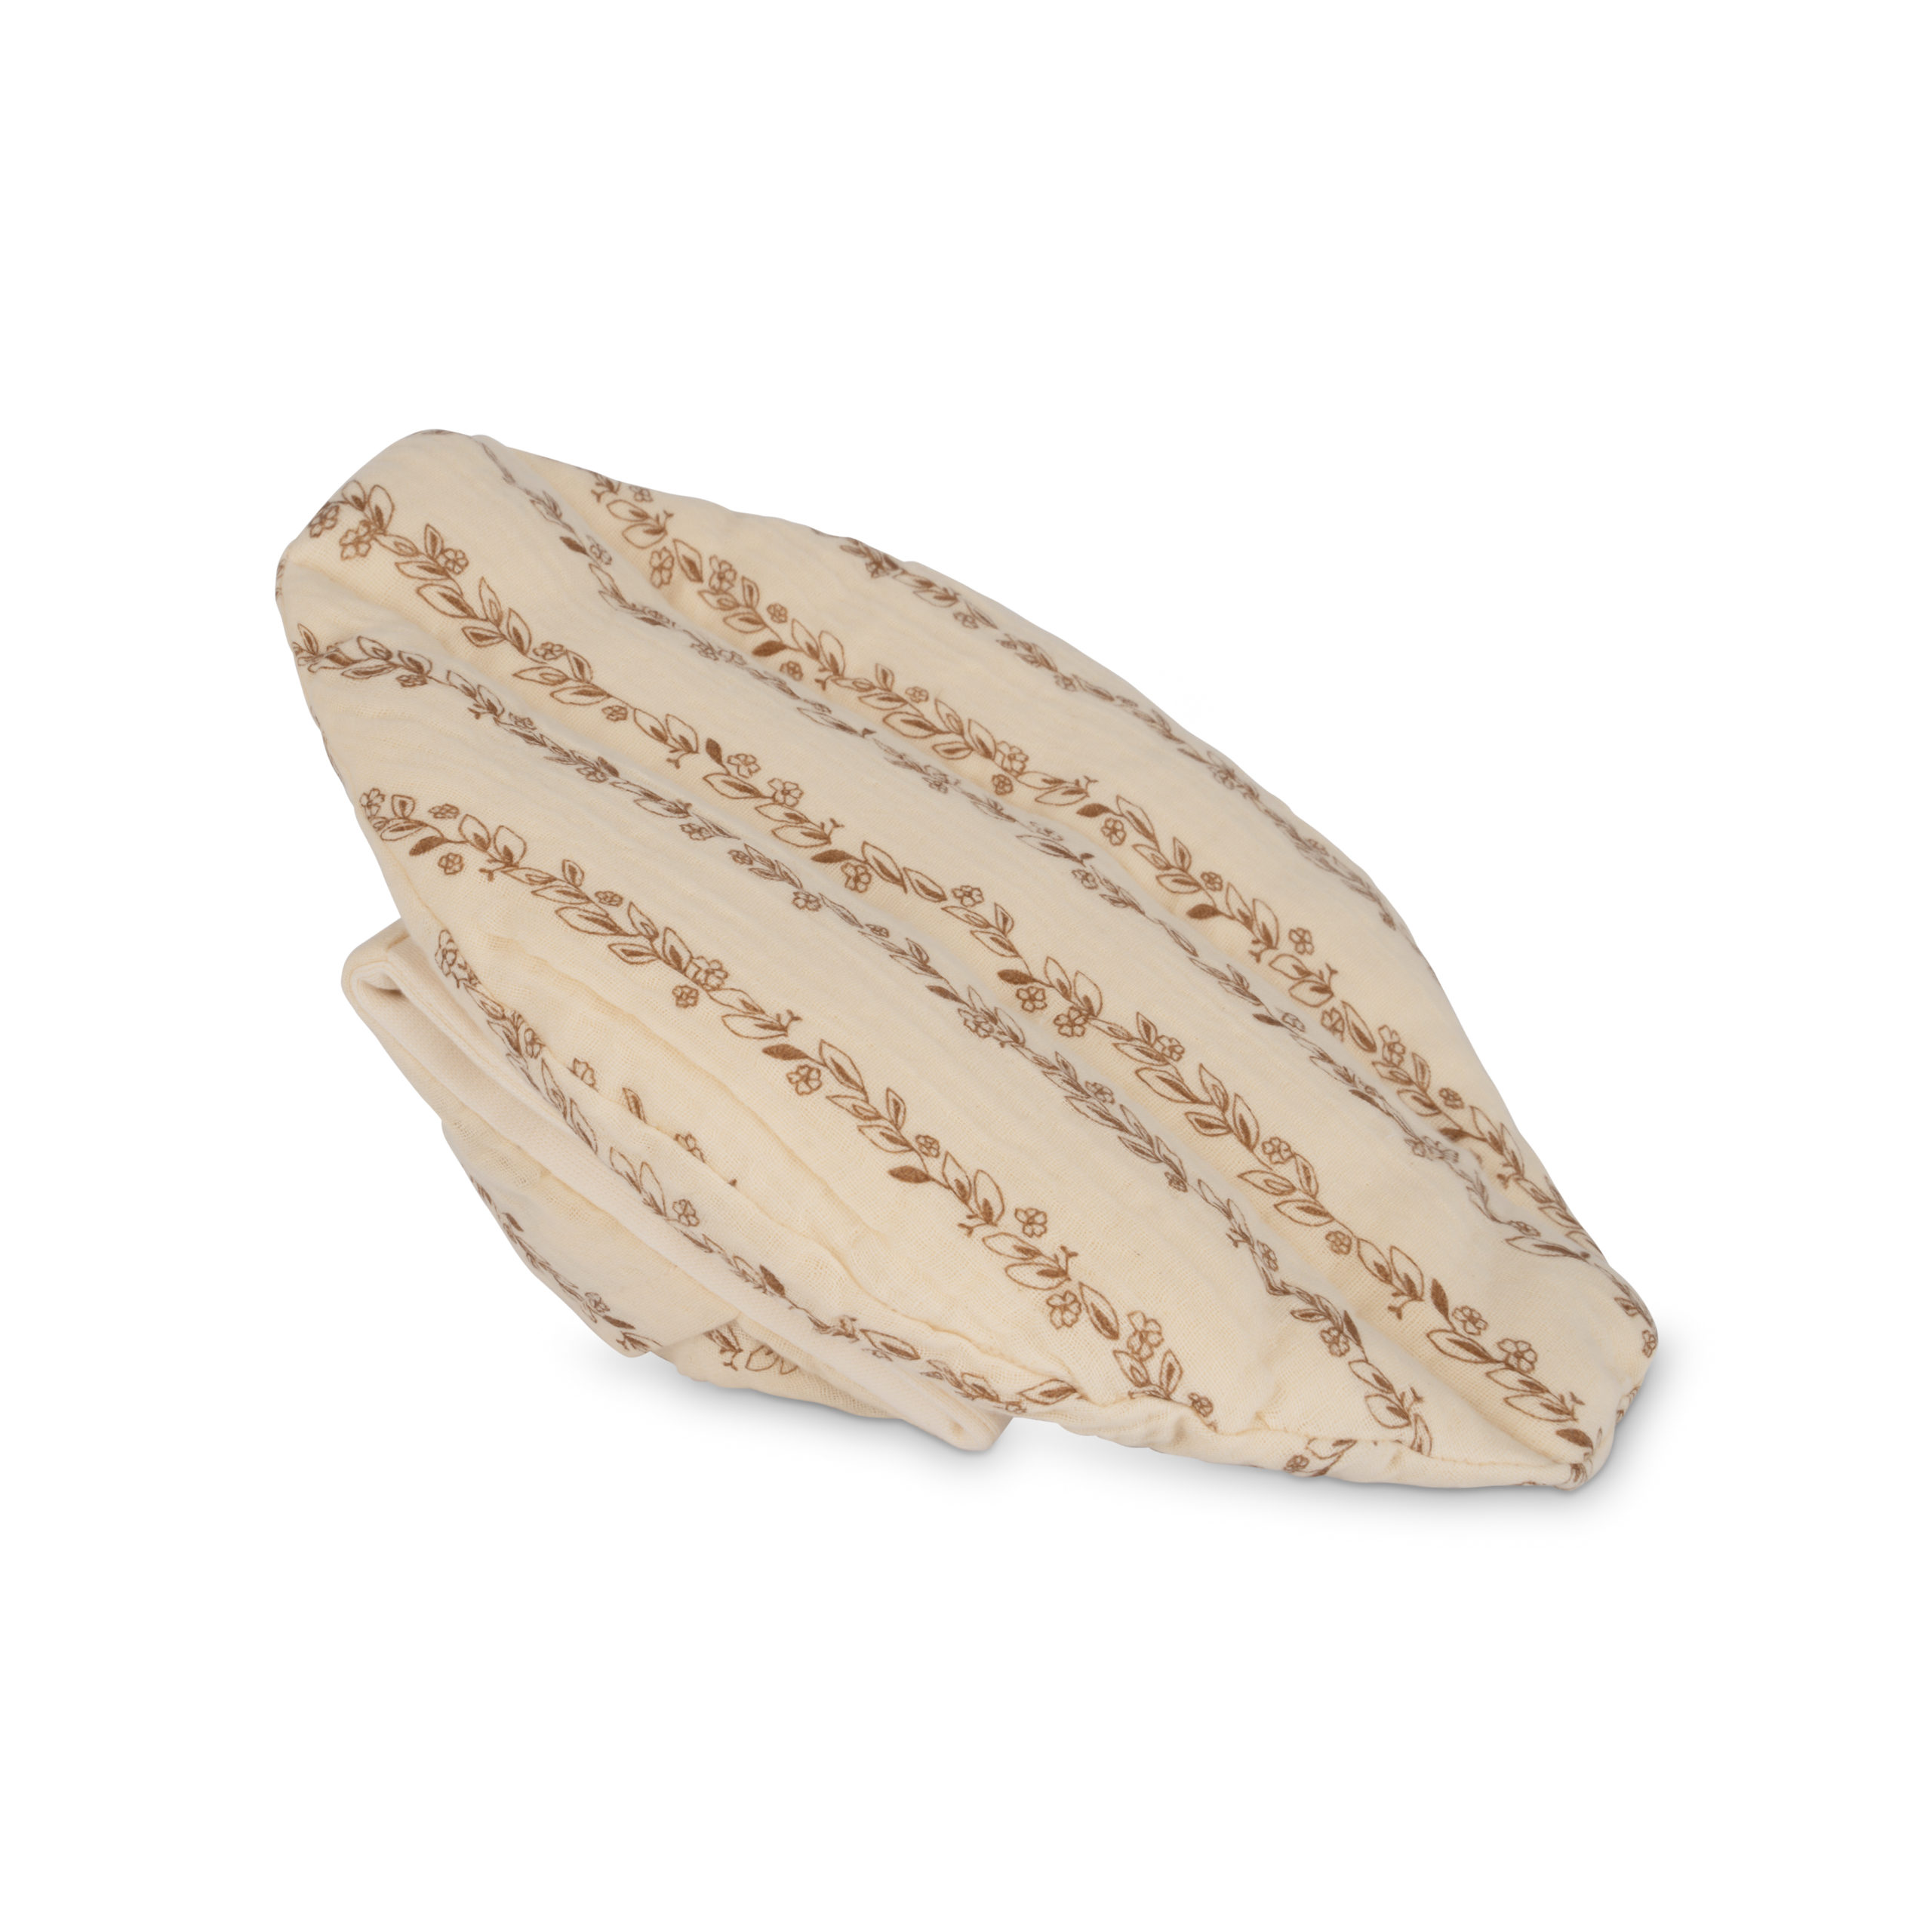 That's Mine - Comfy Me Baby Pillow - Leaves Stripe (CM87)